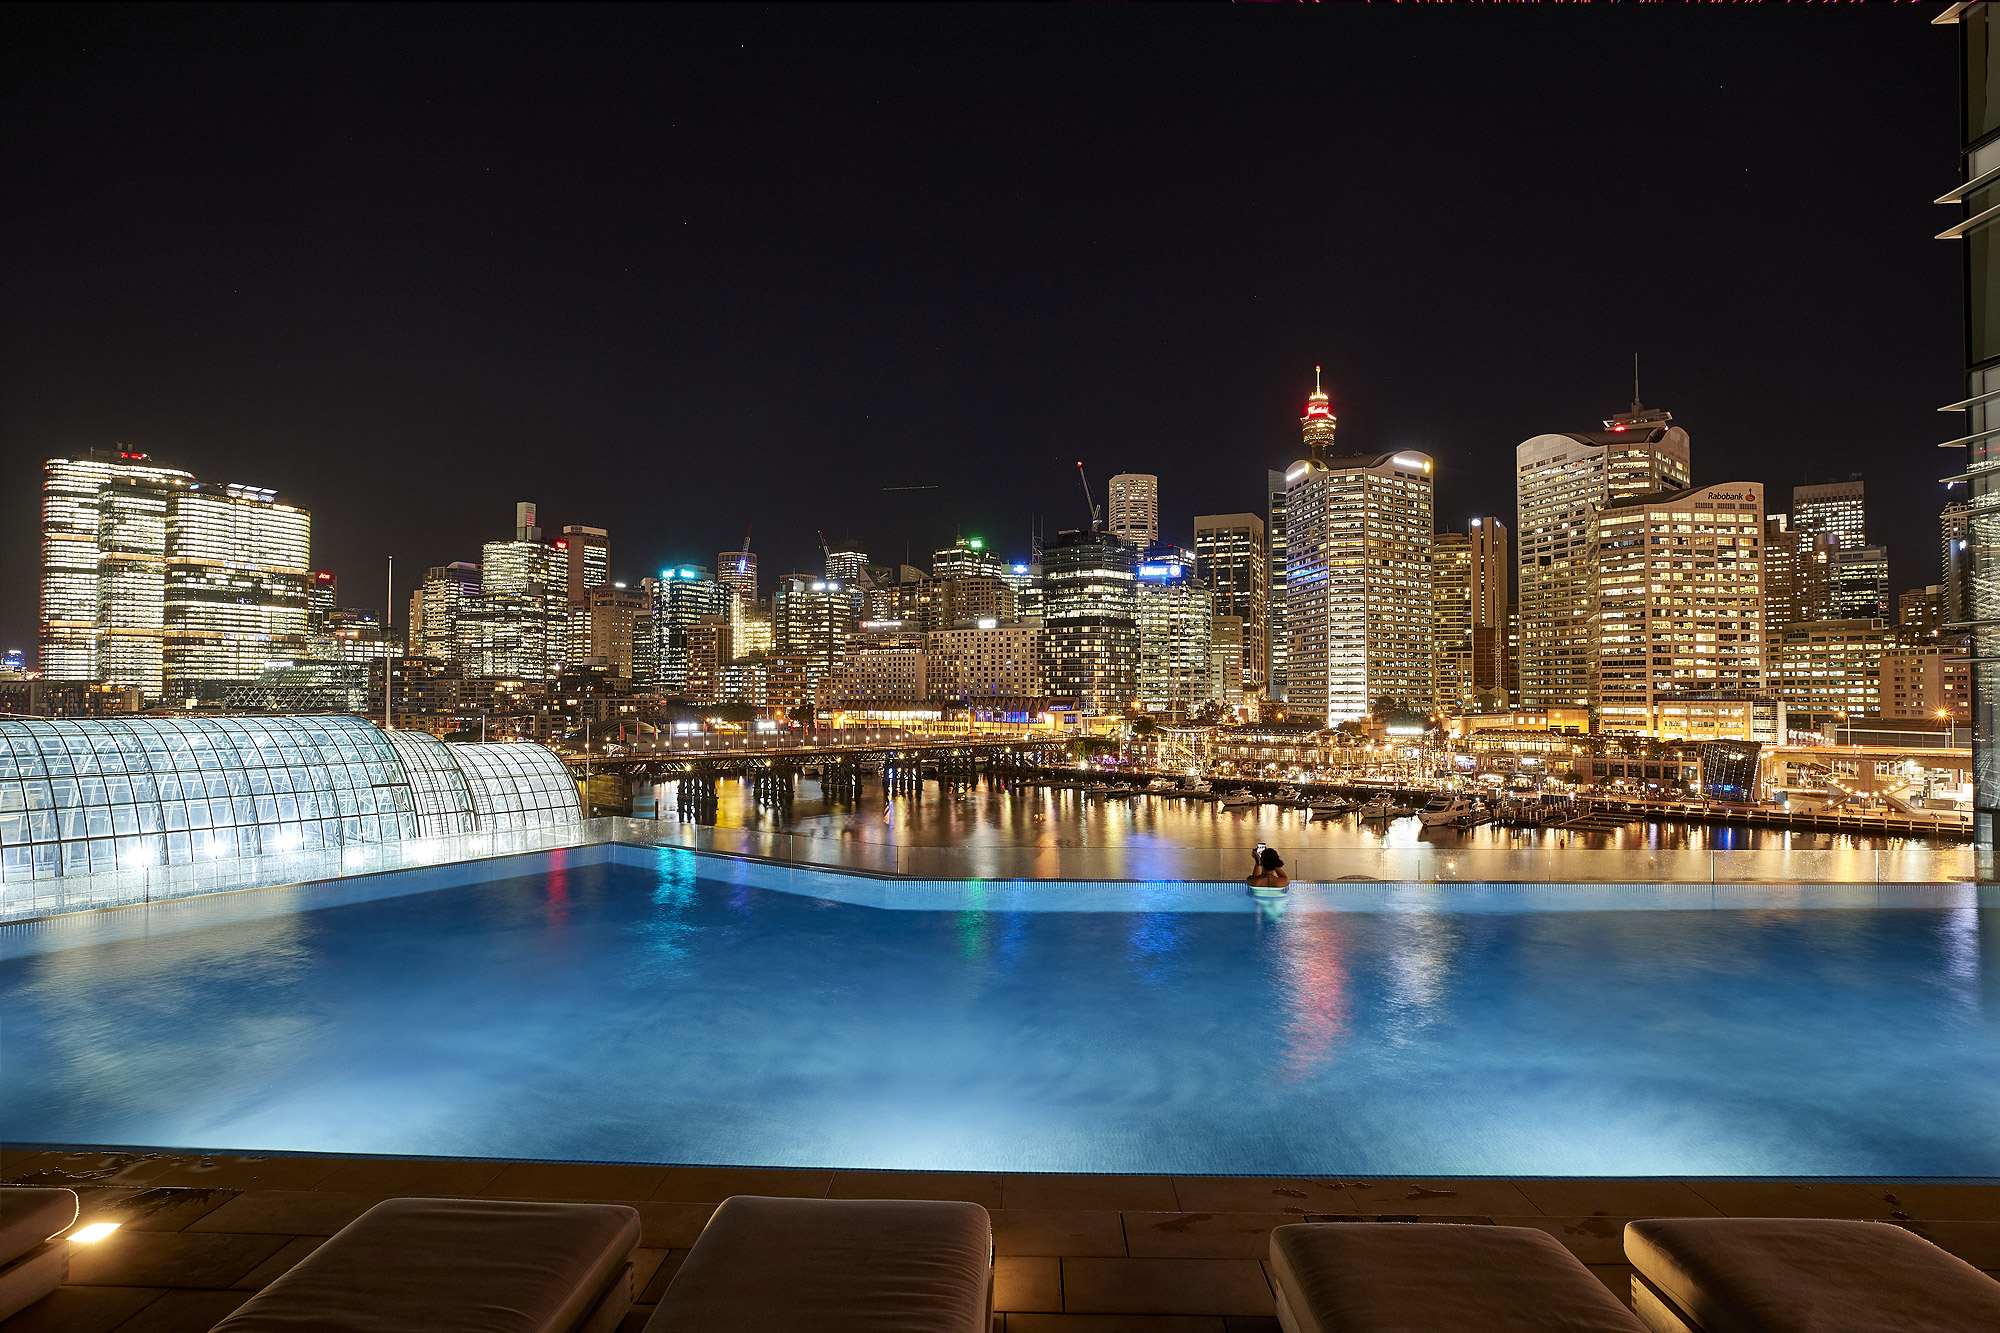 evening swim in the Le Rivage Pool bar pool overlooking Darling Harbour